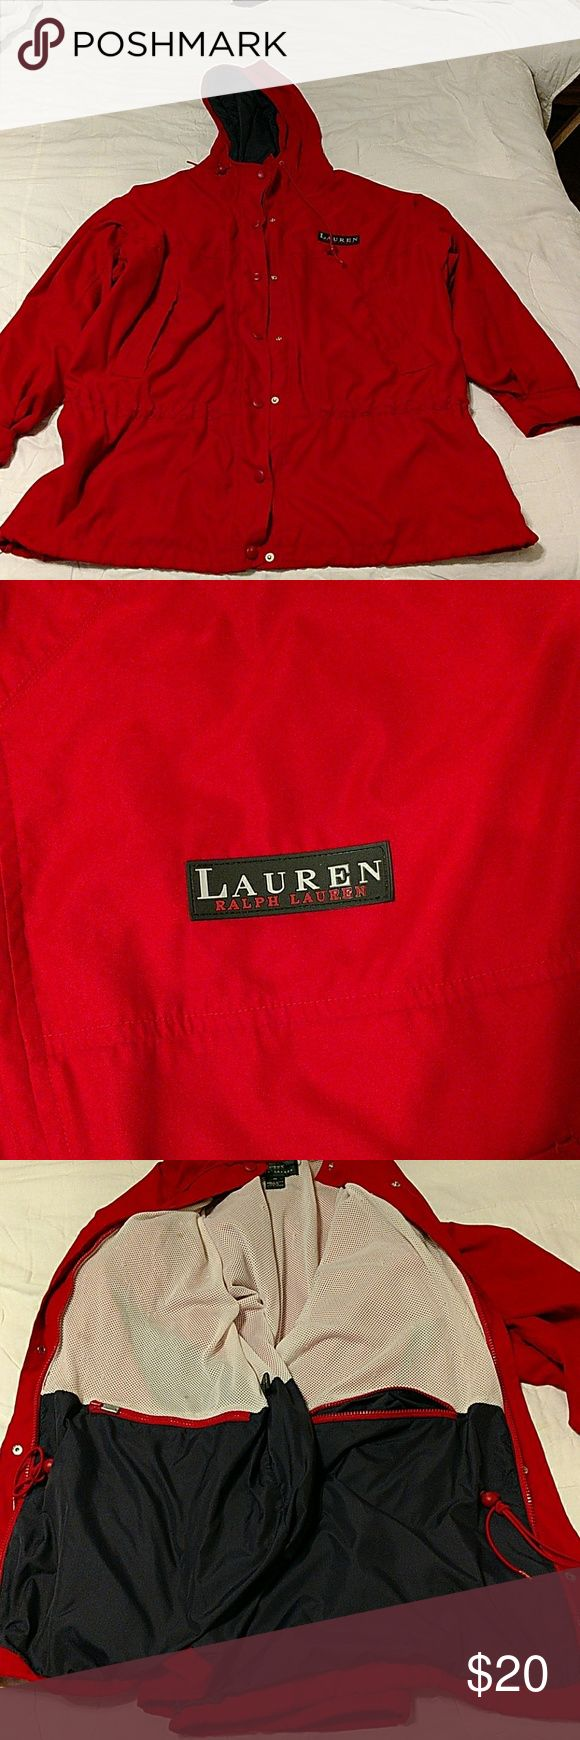 Red wind breaker Lauren by Ralph Lauren red wind breaker with navy and white lining.  Shows some slight signs of wear but nothing major.  Slight discoloration around sleeve openings, a couple spots on inside, and some picking in net lining.  Exterior is in really good condition.  States a size M but it would fit a L also. Lauren Ralph Lauren Jackets & Coats